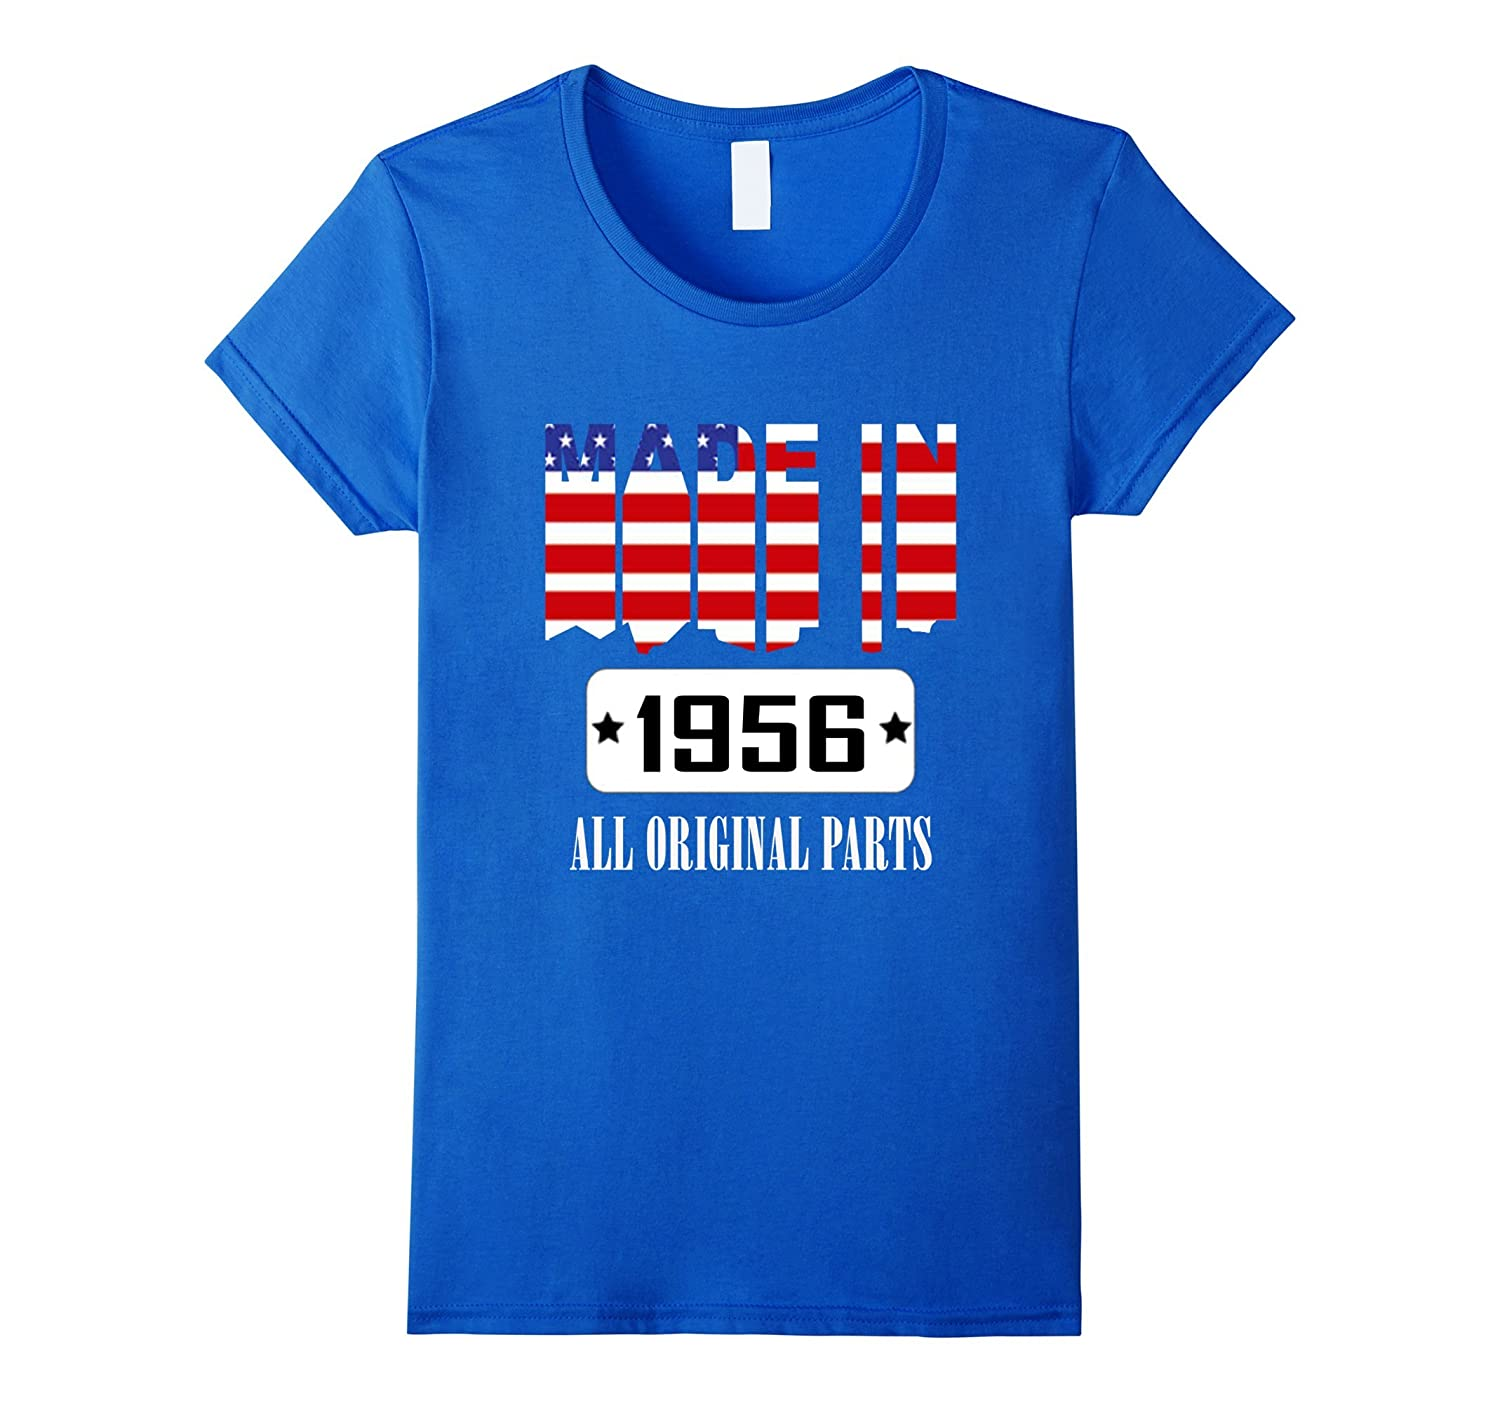 61th Birthday T-Shirt, Made In 1956 All Original Parts